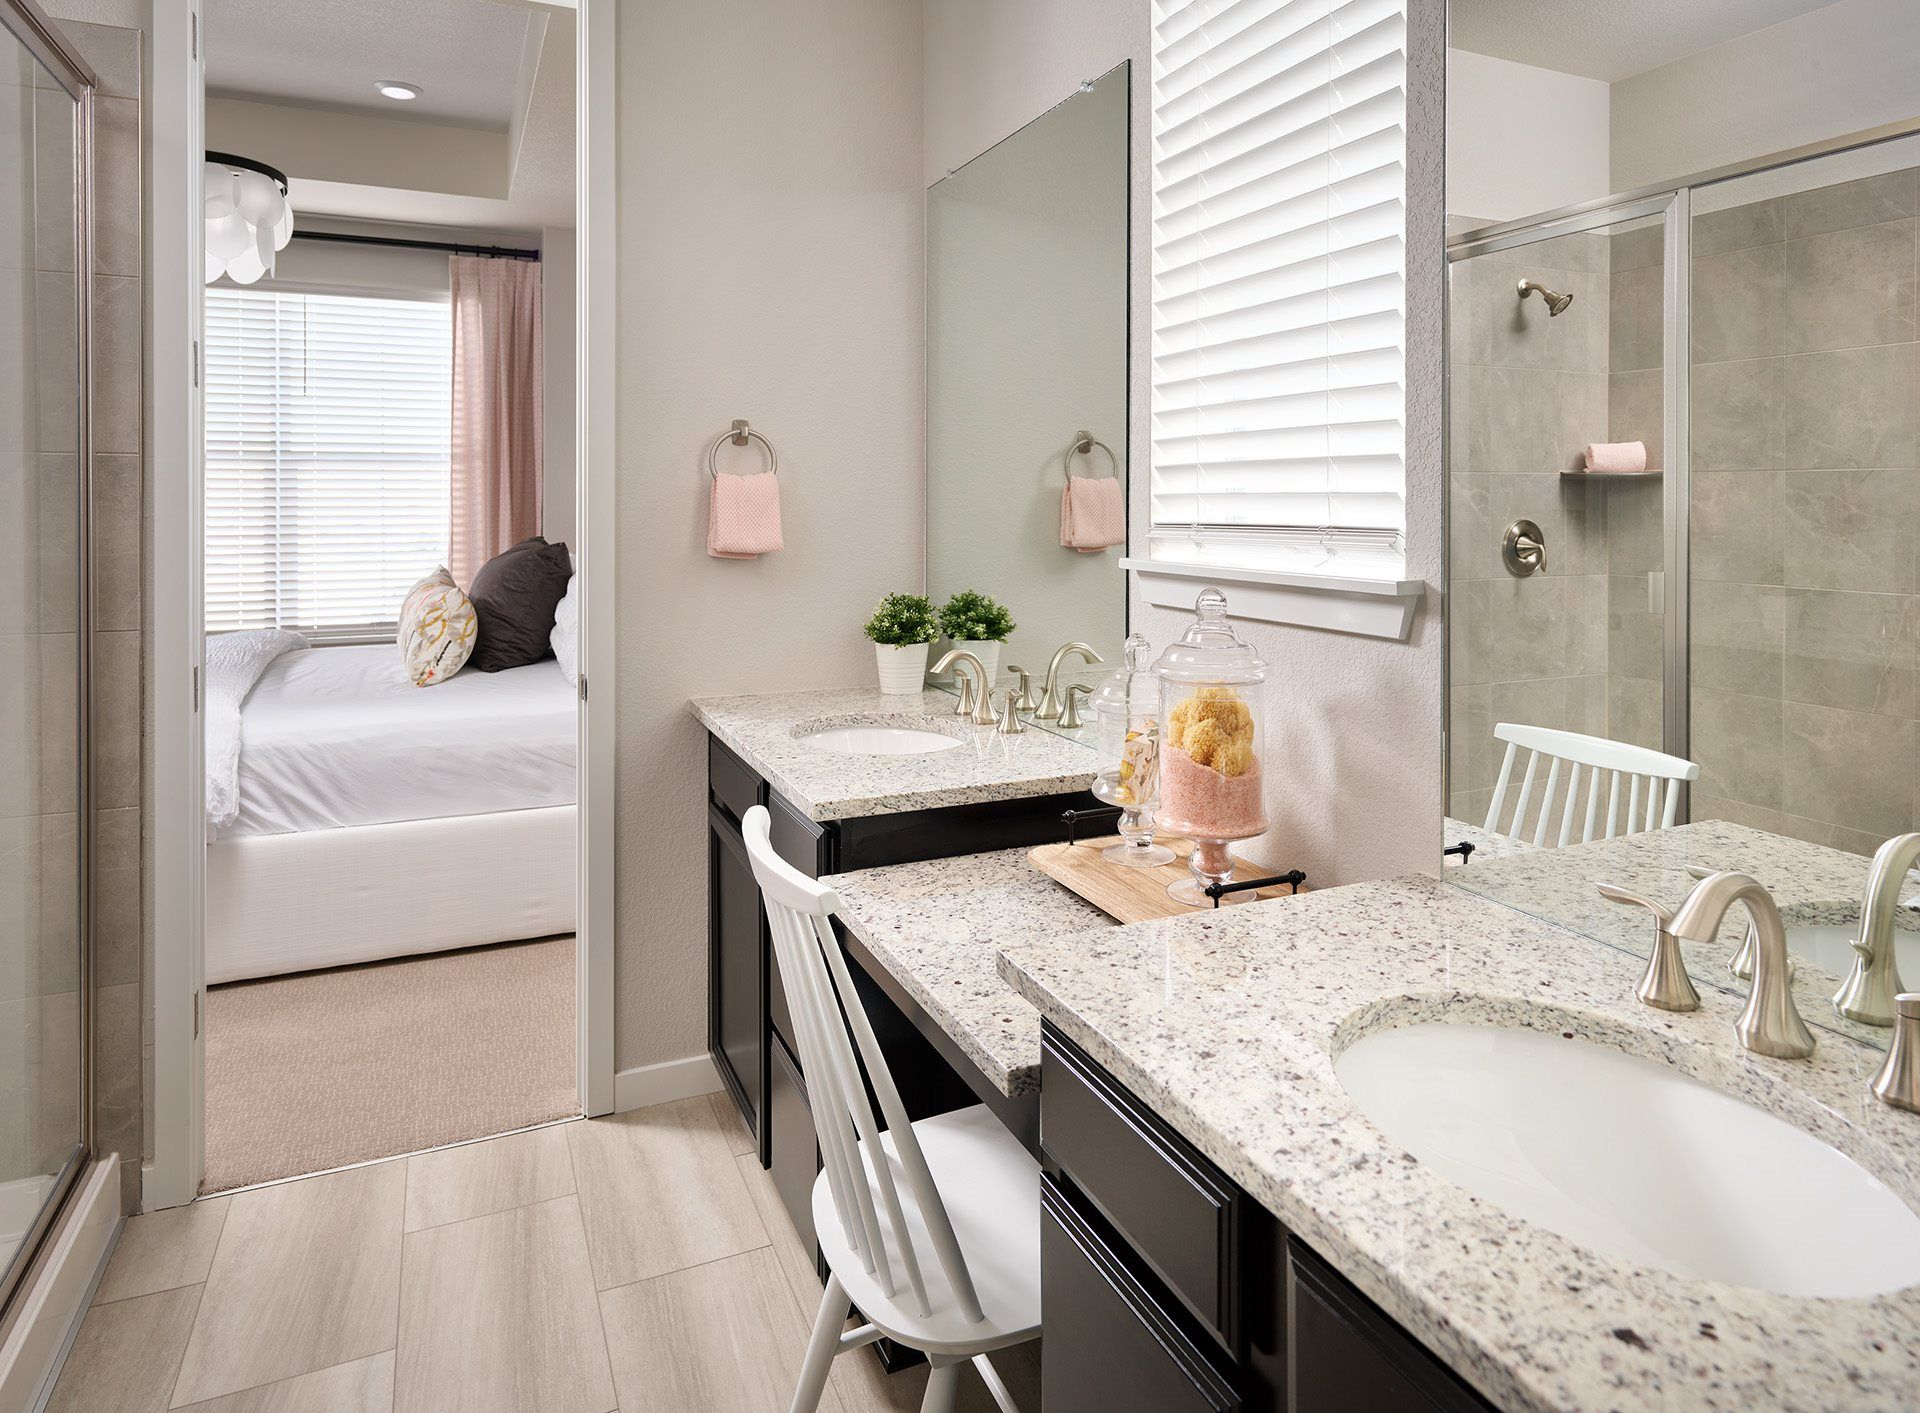 Bathroom featured in the Snowmass By Lennar in Denver, CO